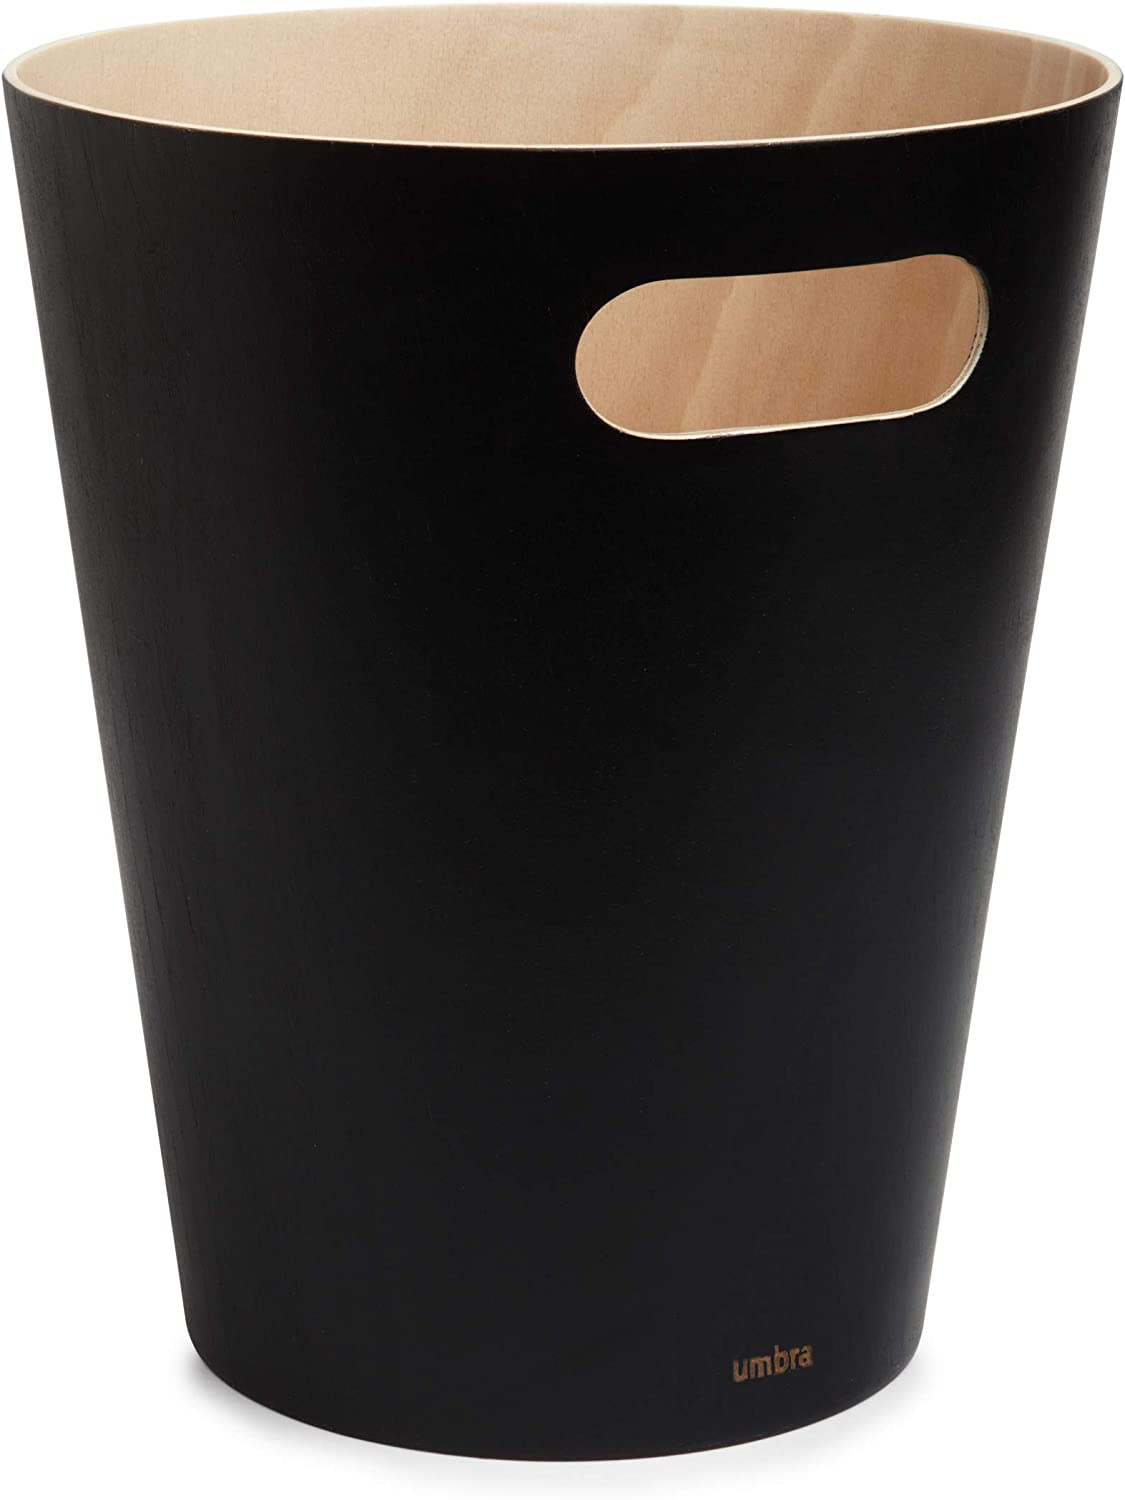 4 Premium Tailor-Garbage Cans Boxes for 240 Litre Cans Anthracite//Front-Precious Wood